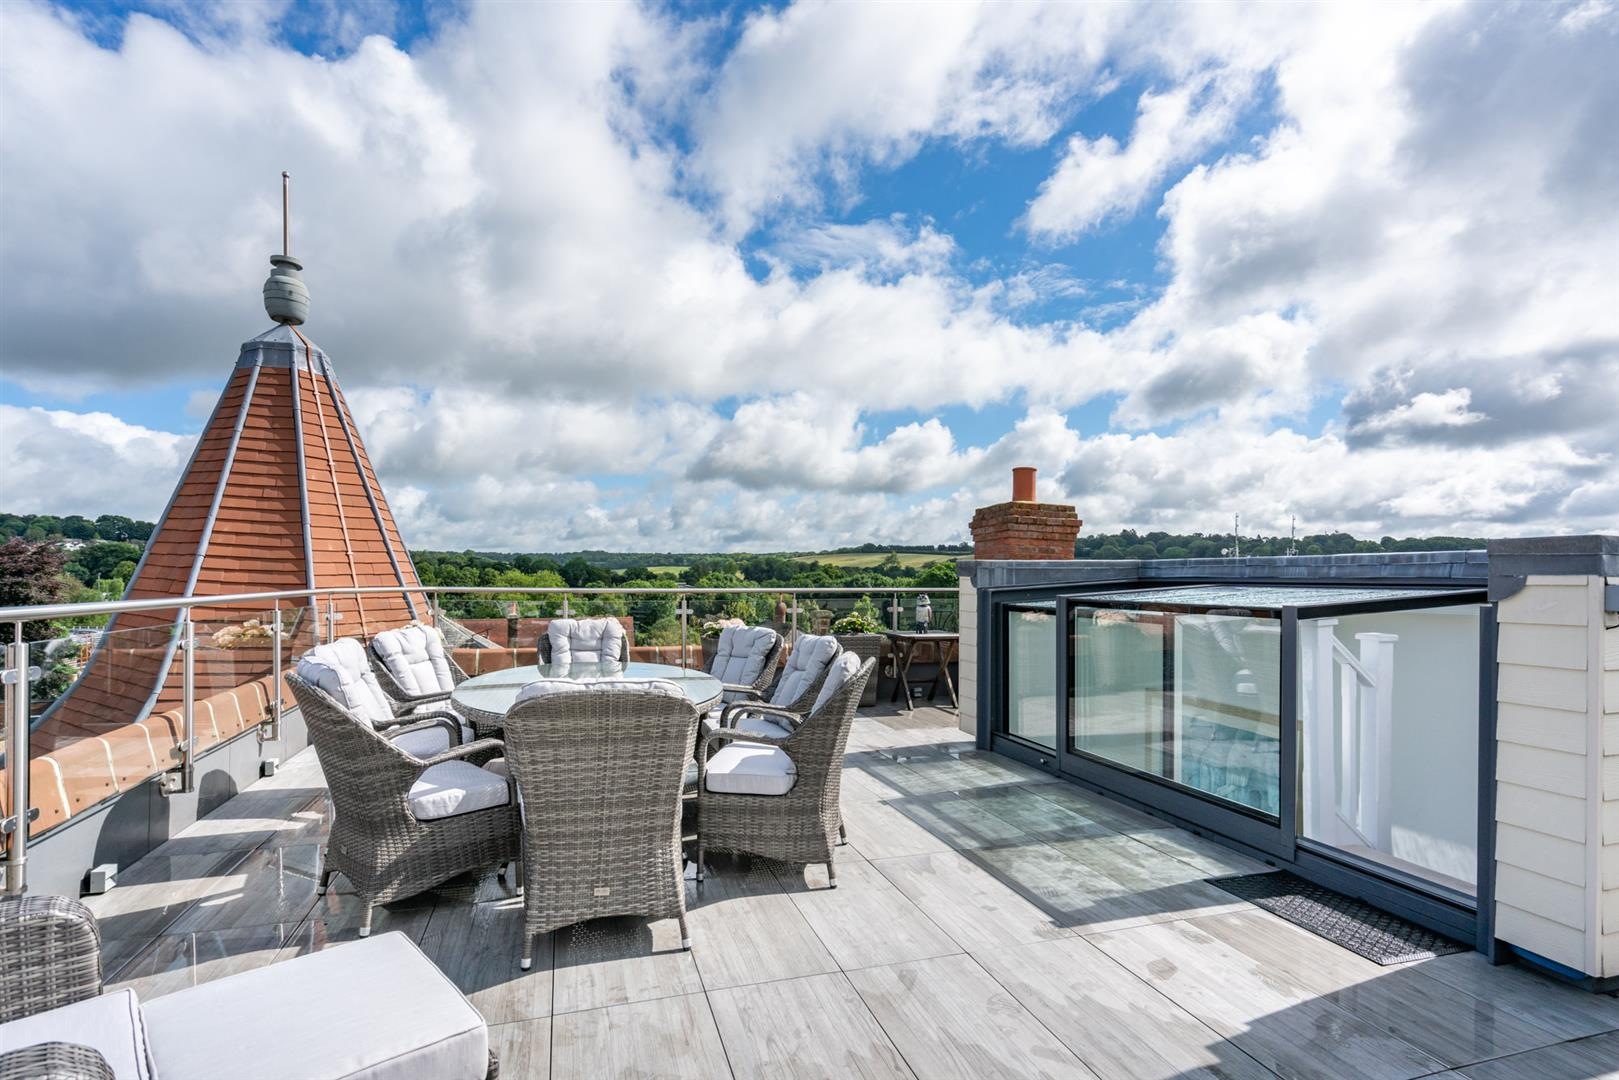 10-Birch-Place-0983- terrace with view.jpg